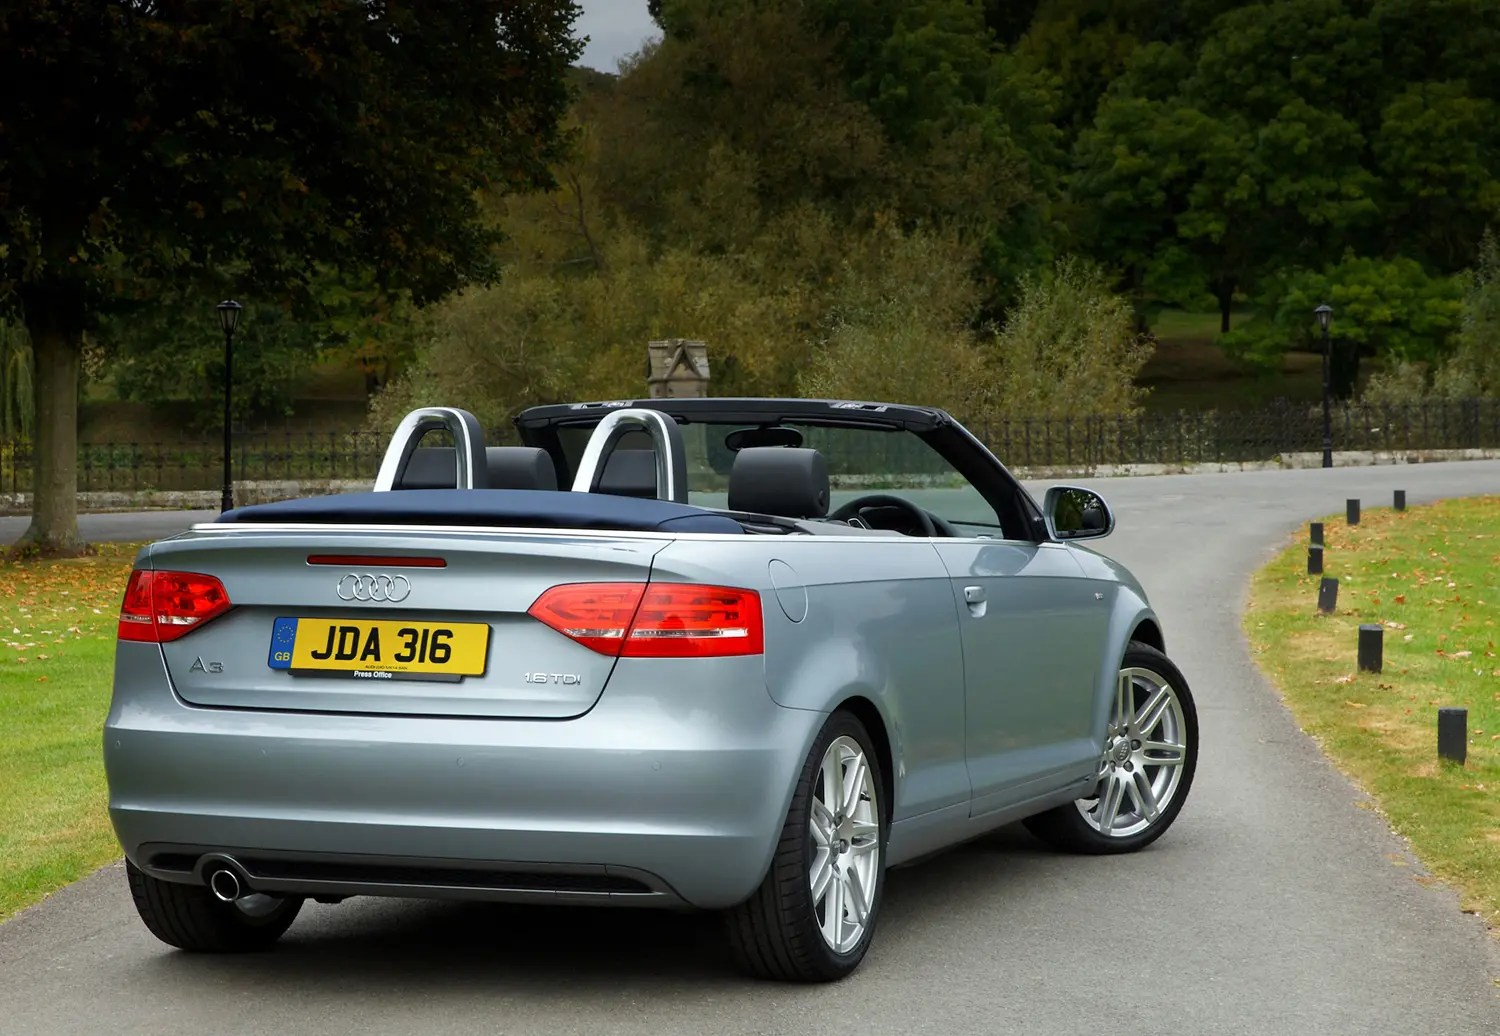 A3 Cabriolet Review Audi A3 Cabriolet Review 2008 2013 Parkers